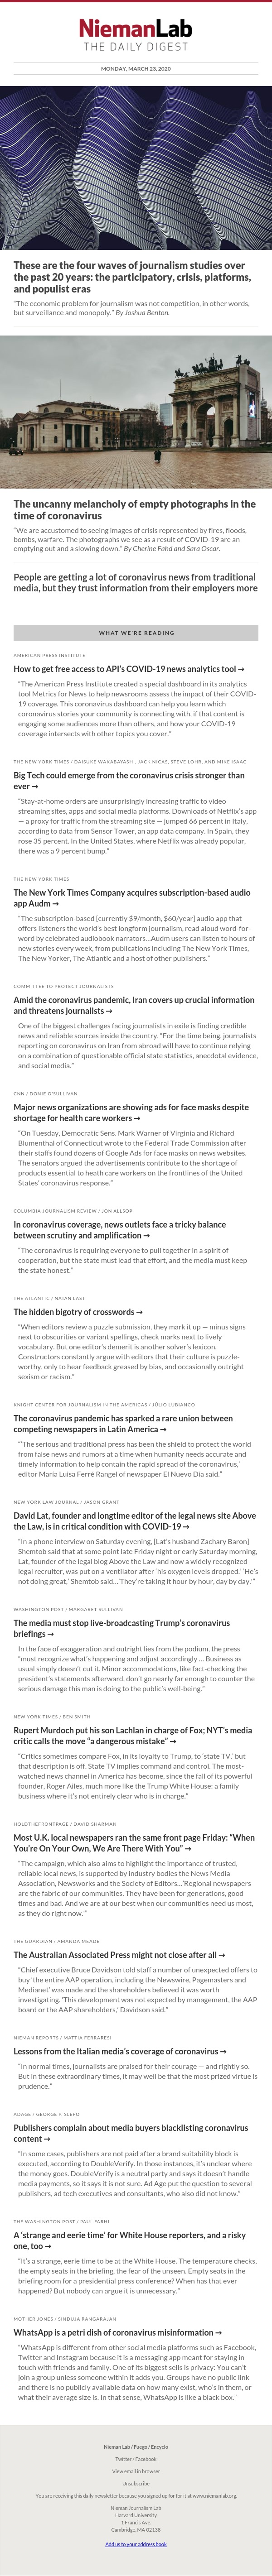 These are the four waves of journalism studies over the past 20 years: the participatory, crisis, platforms, and populist eras